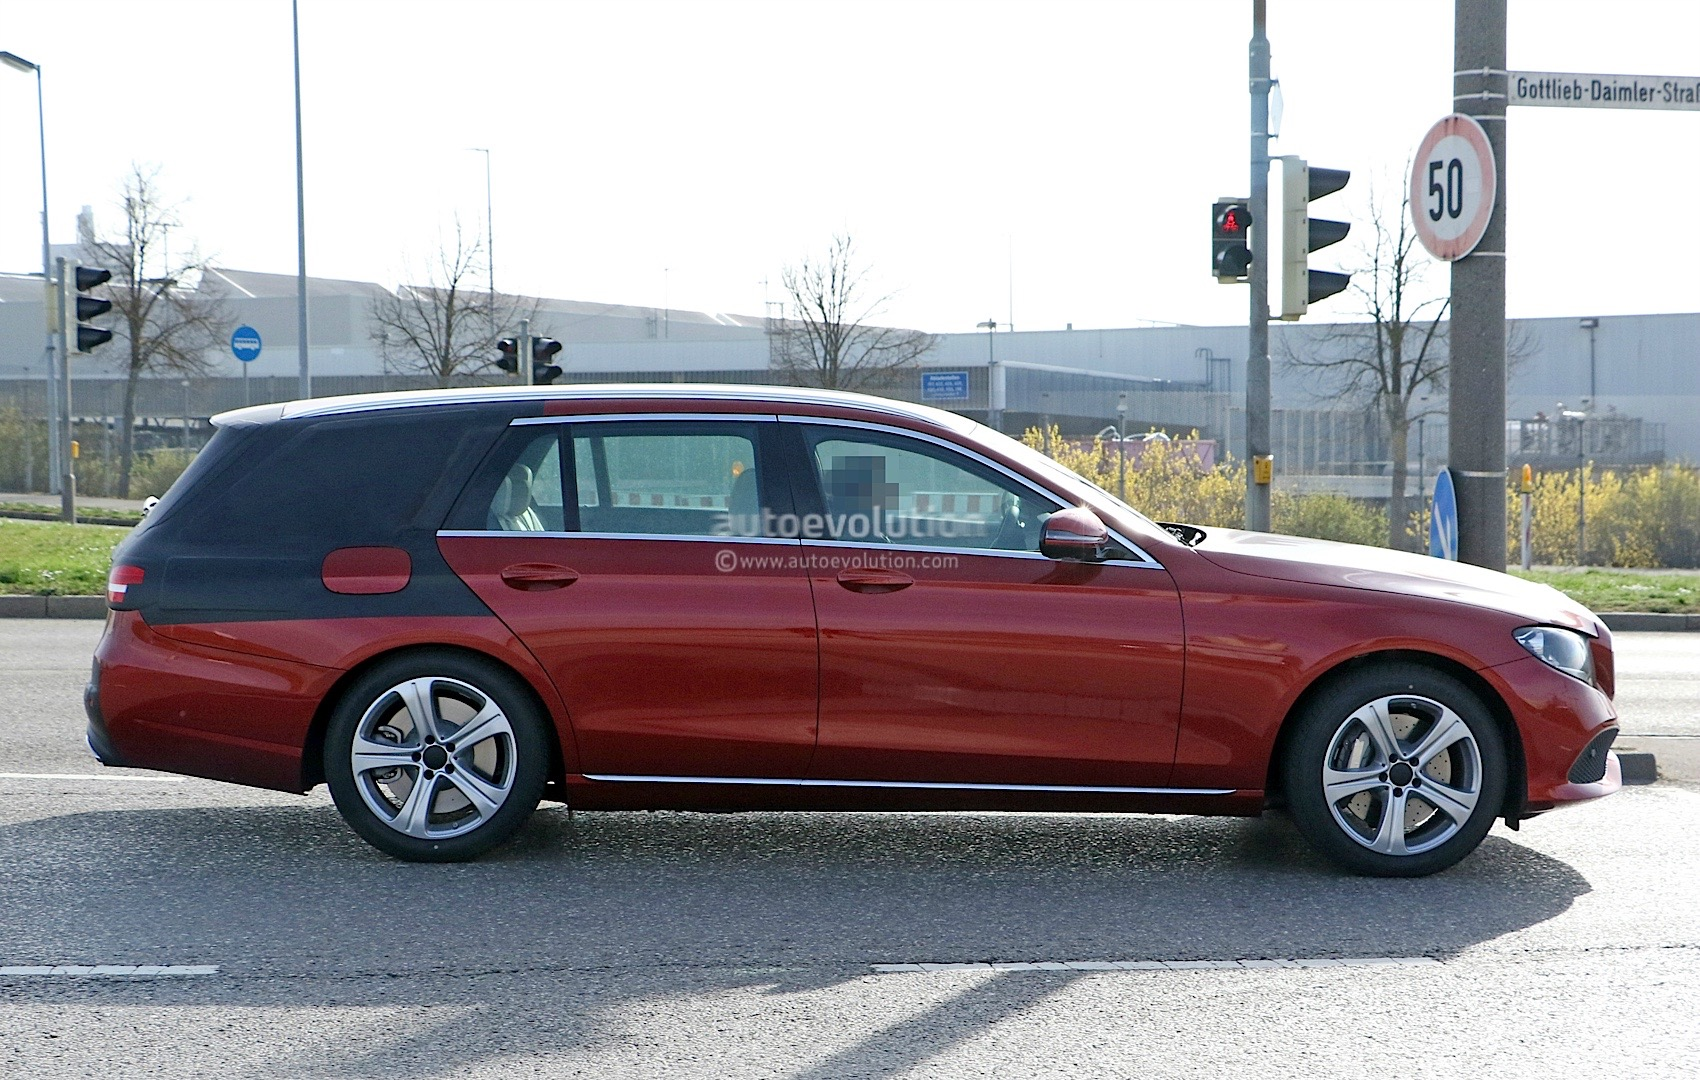 2017 mercedes benz e class wagon s213 spied in germany looks cavernous a. Cars Review. Best American Auto & Cars Review